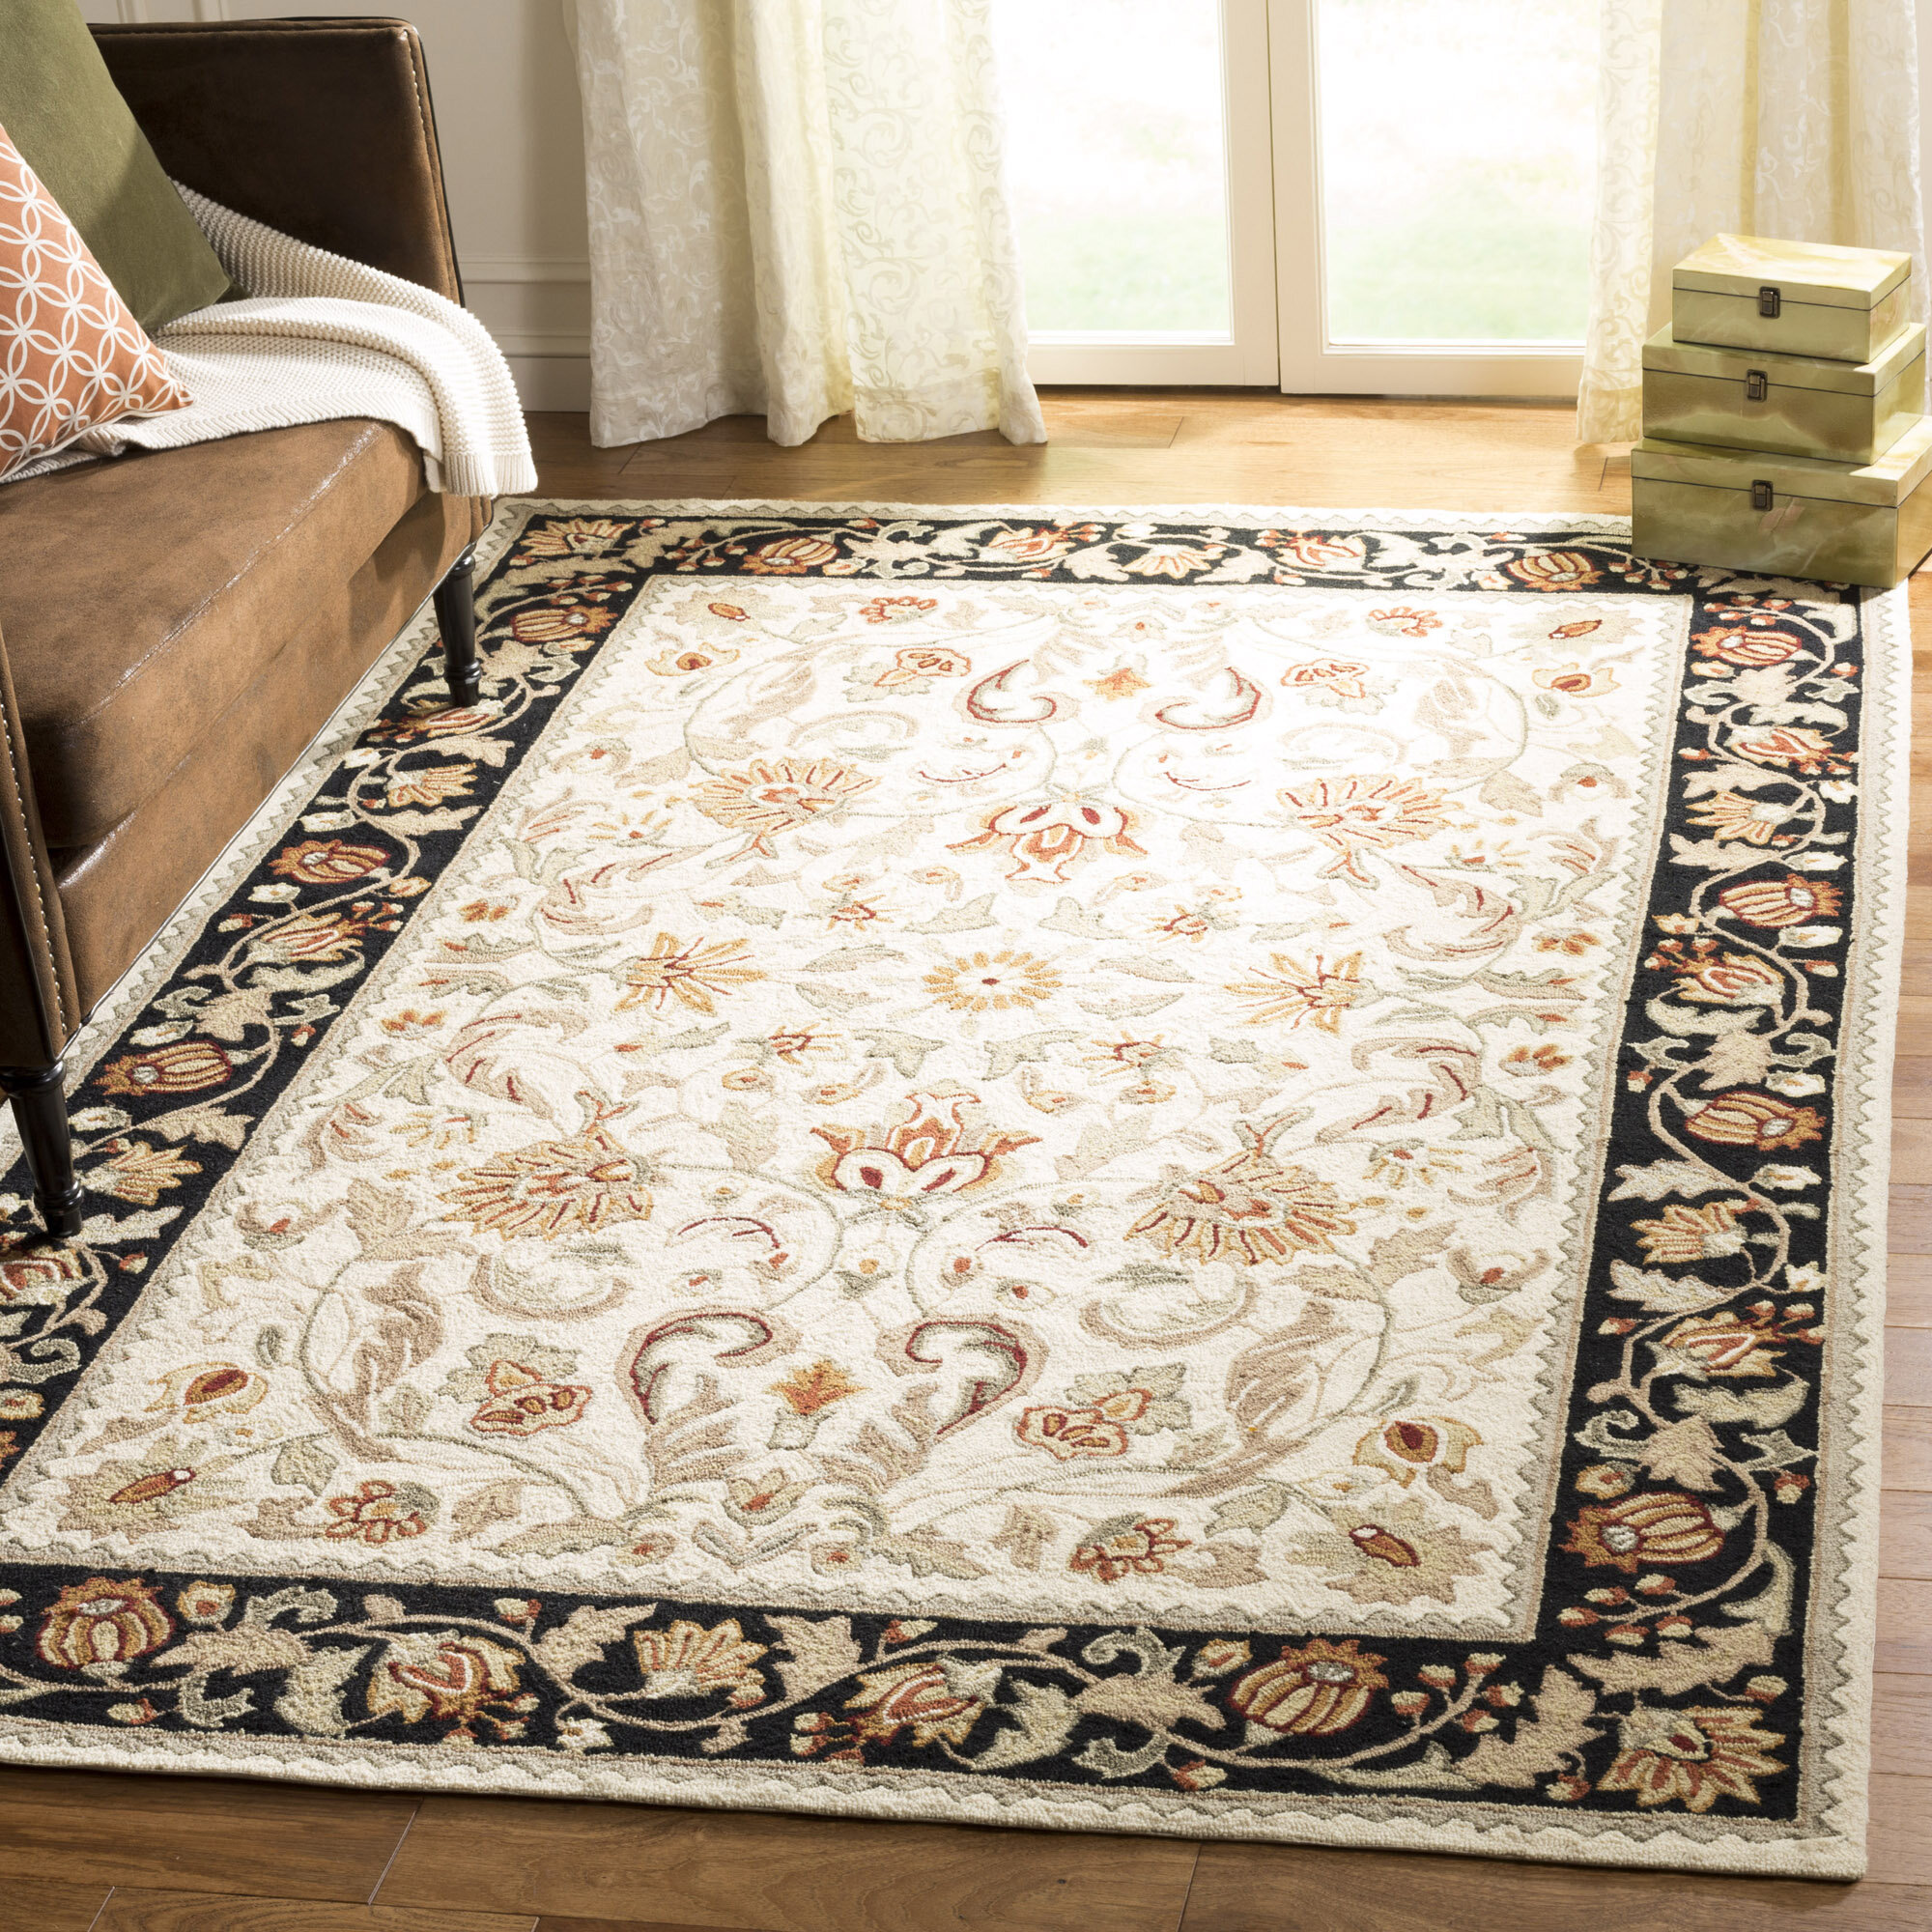 Darby Home Co Kapur Hand-Hooked Ivory/Navy Area Rug | Wayfair